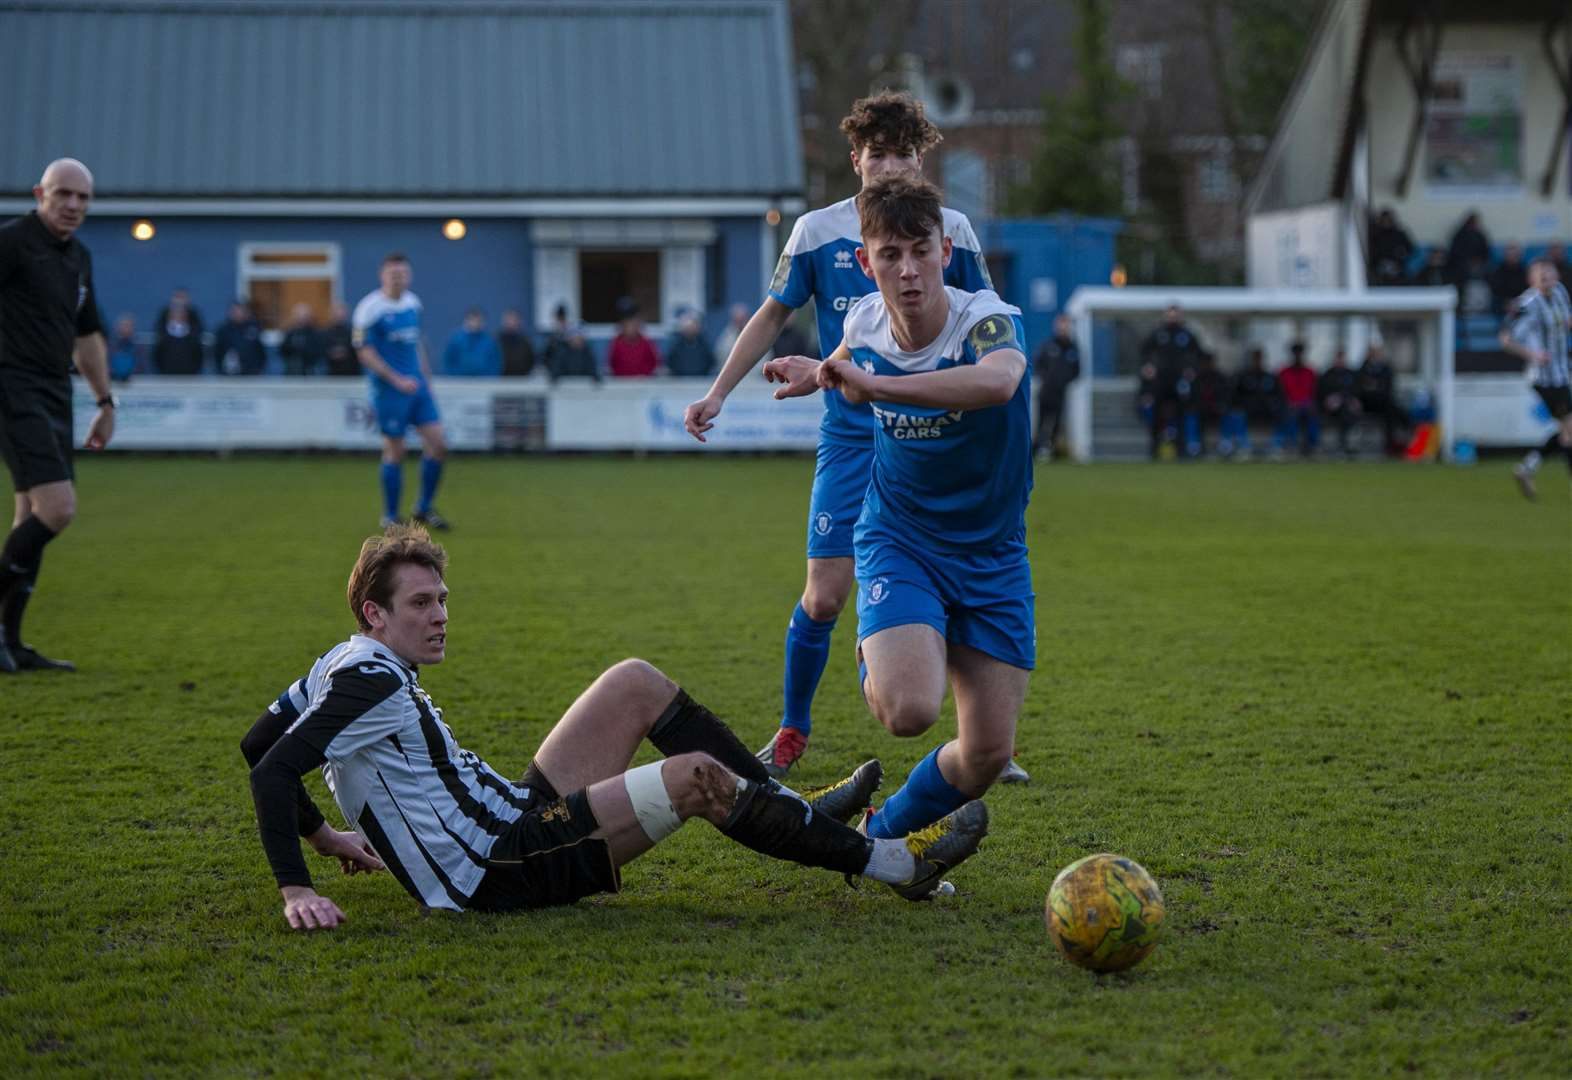 Bury Town youngster signs Ipswich Town contract